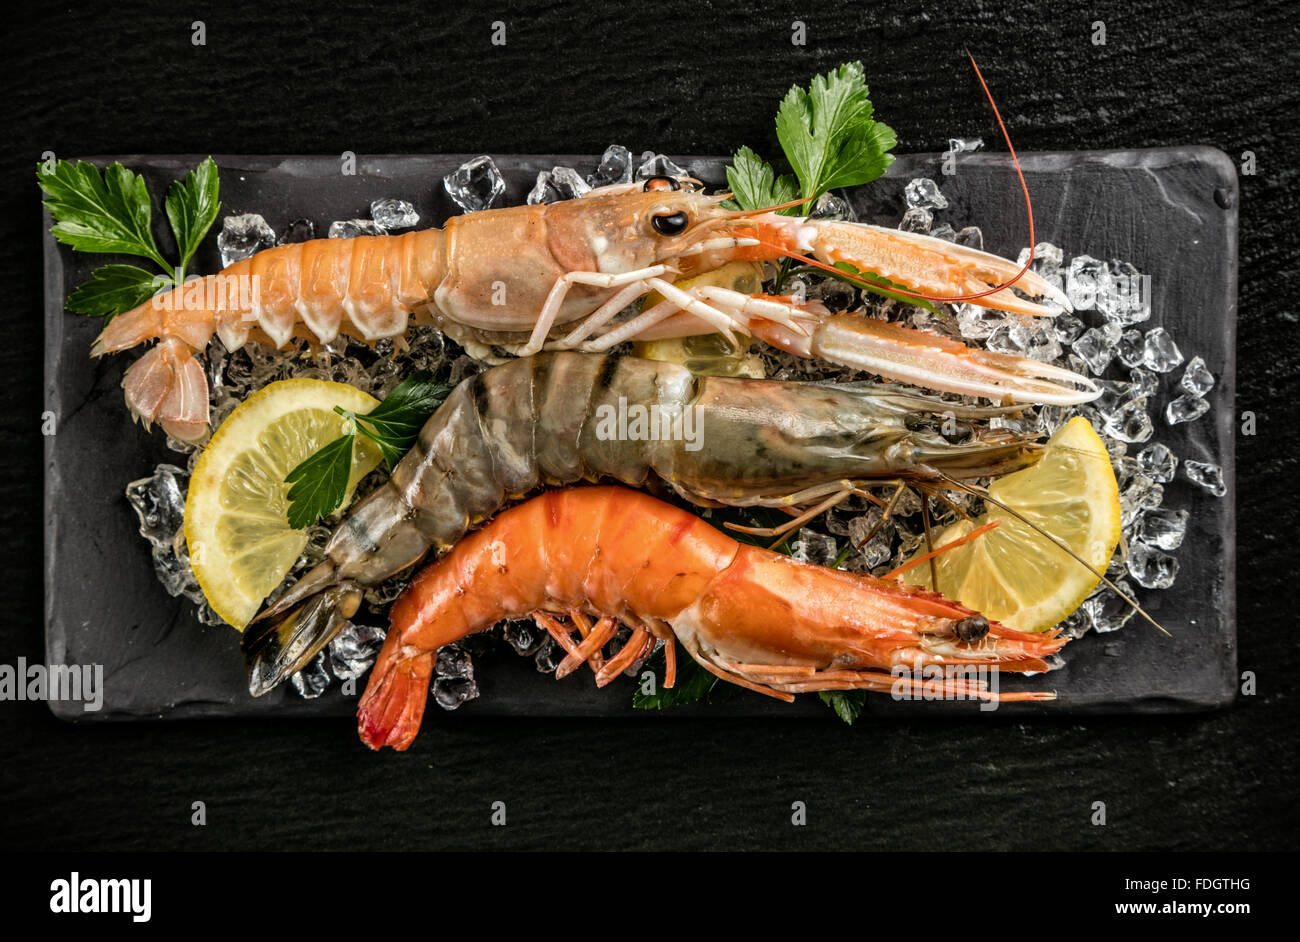 Prawns and lobster served on black stone - Stock Image